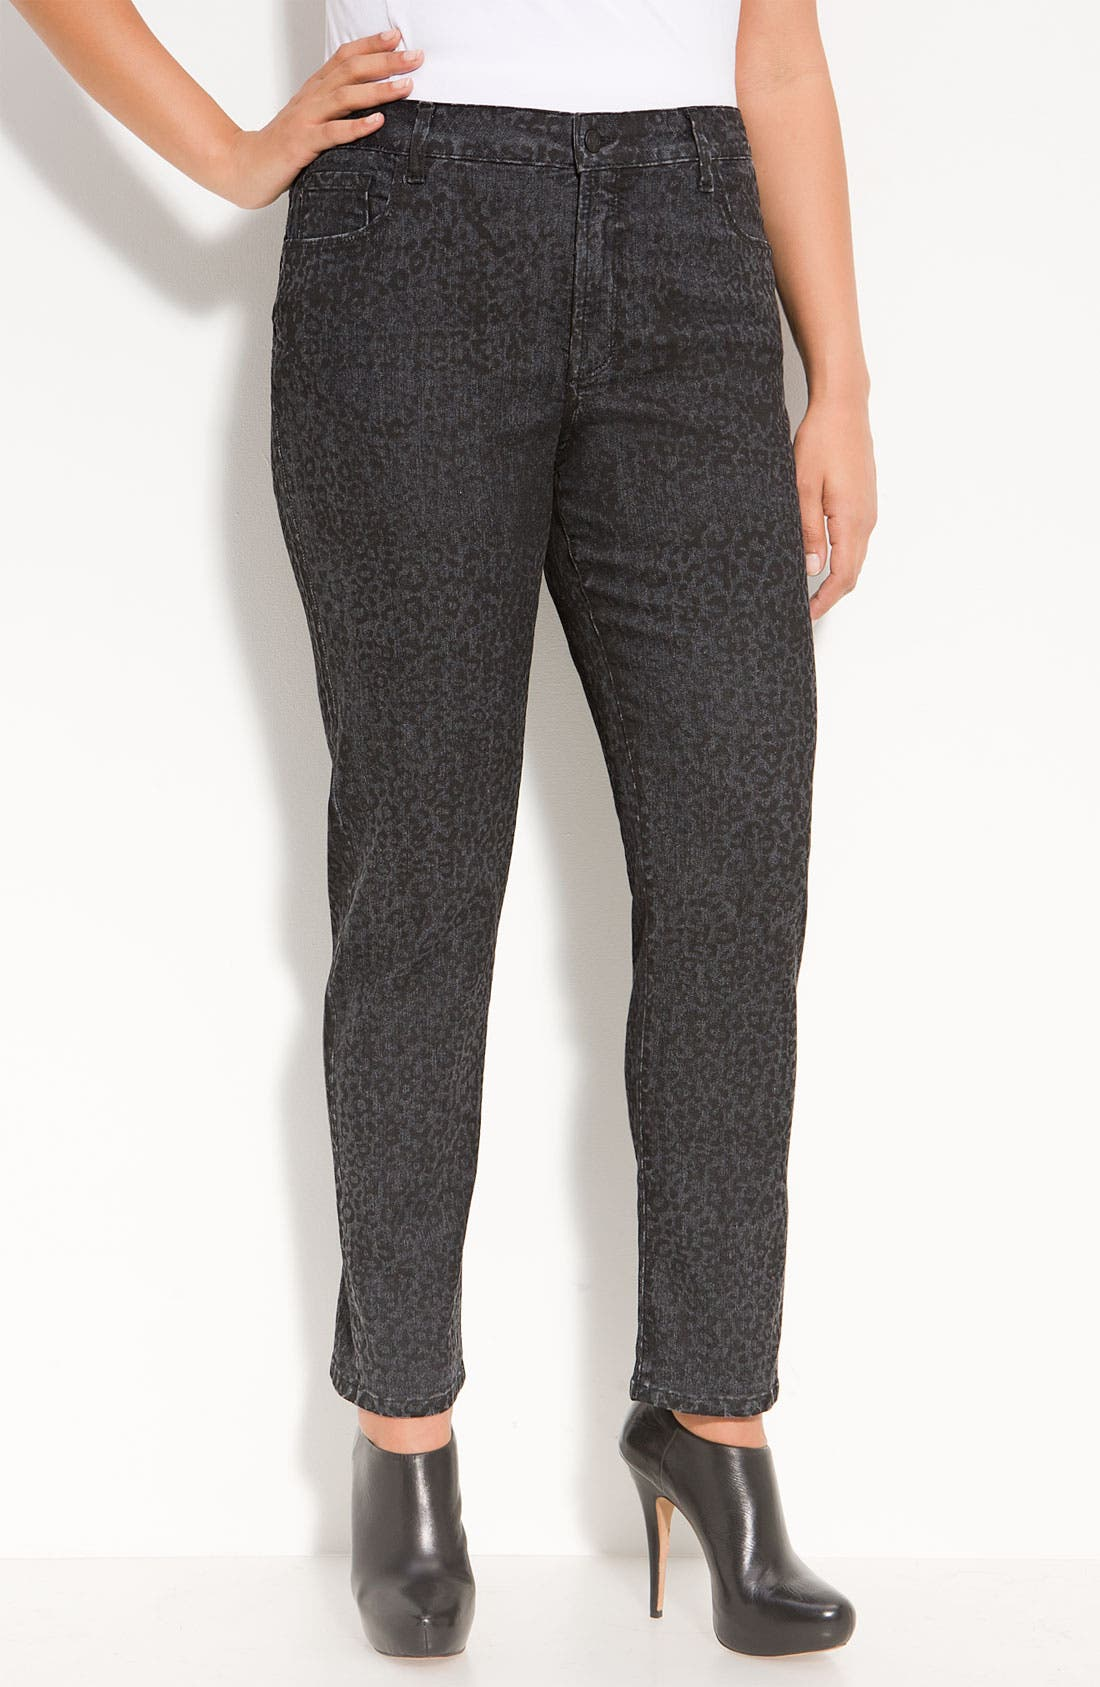 Alternate Image 1 Selected - Not Your Daughter's Jeans® 'Sheri' Patterned Skinny Stretch Jeans (Plus)